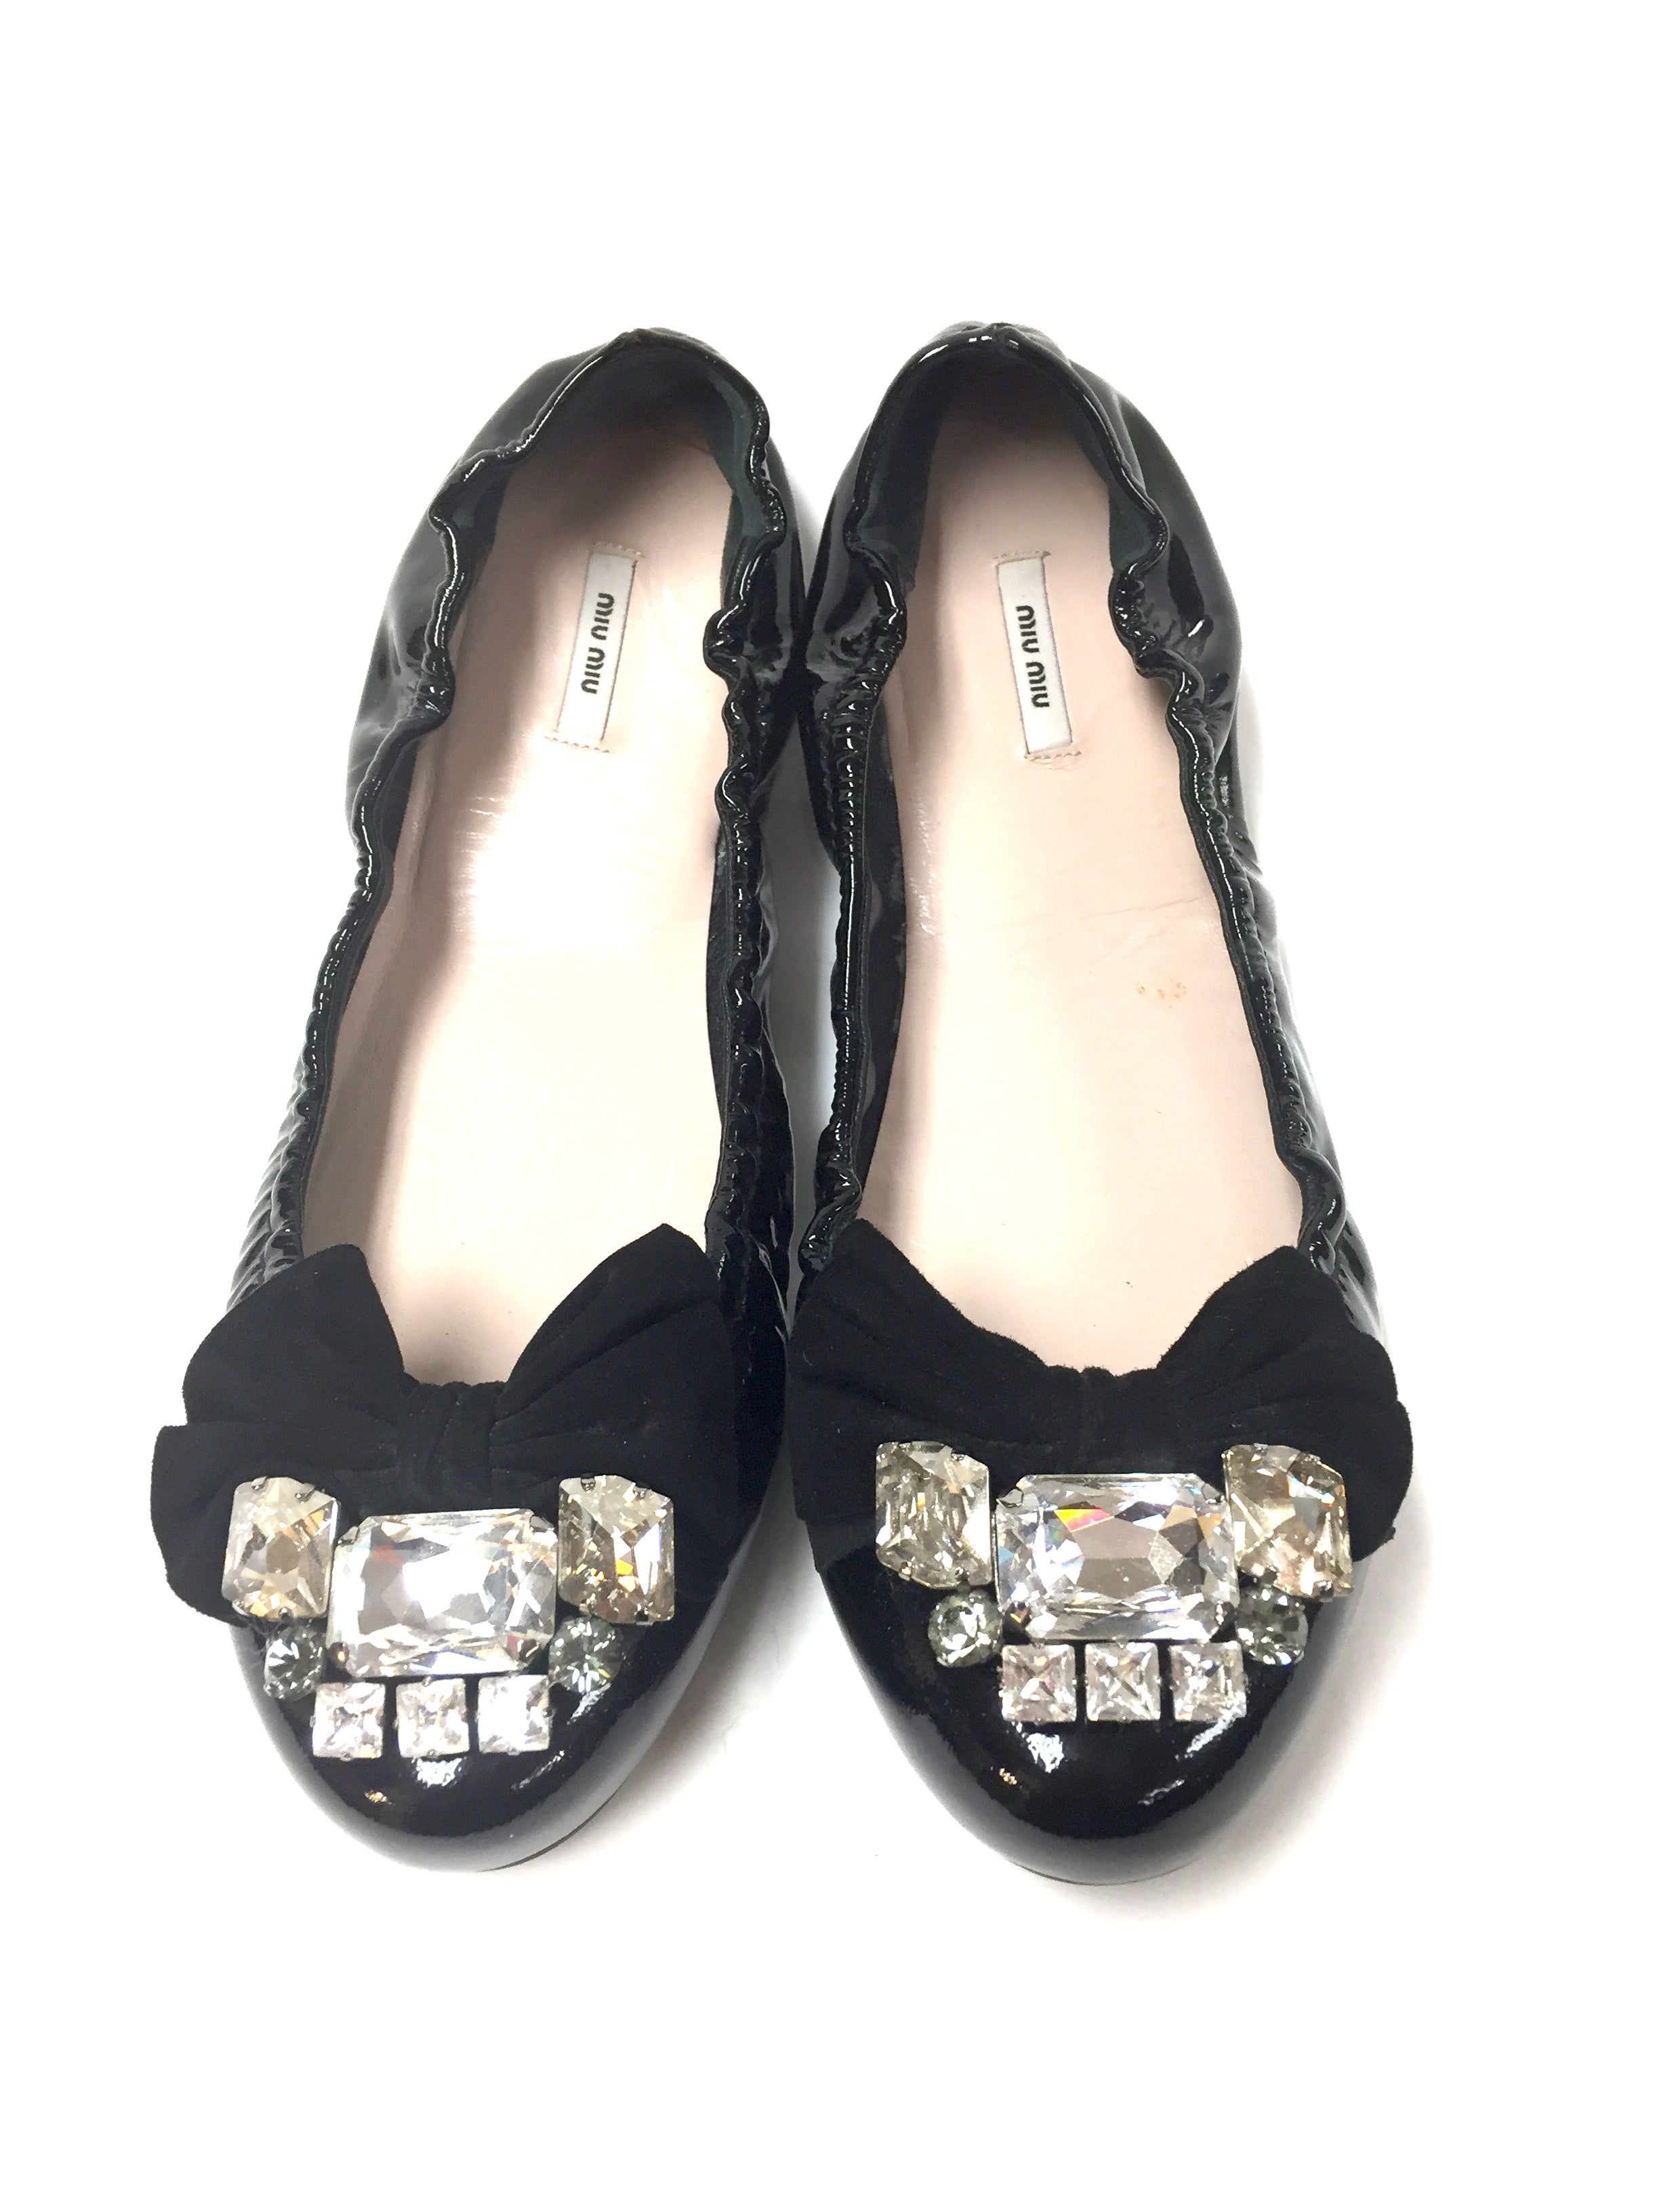 4d702fca71e MIU MIU New Black Patent Leather Elastic Edge Ballet Flats with  Crystal-Studded Suede Bow Embellishment Size  EU 38   US8